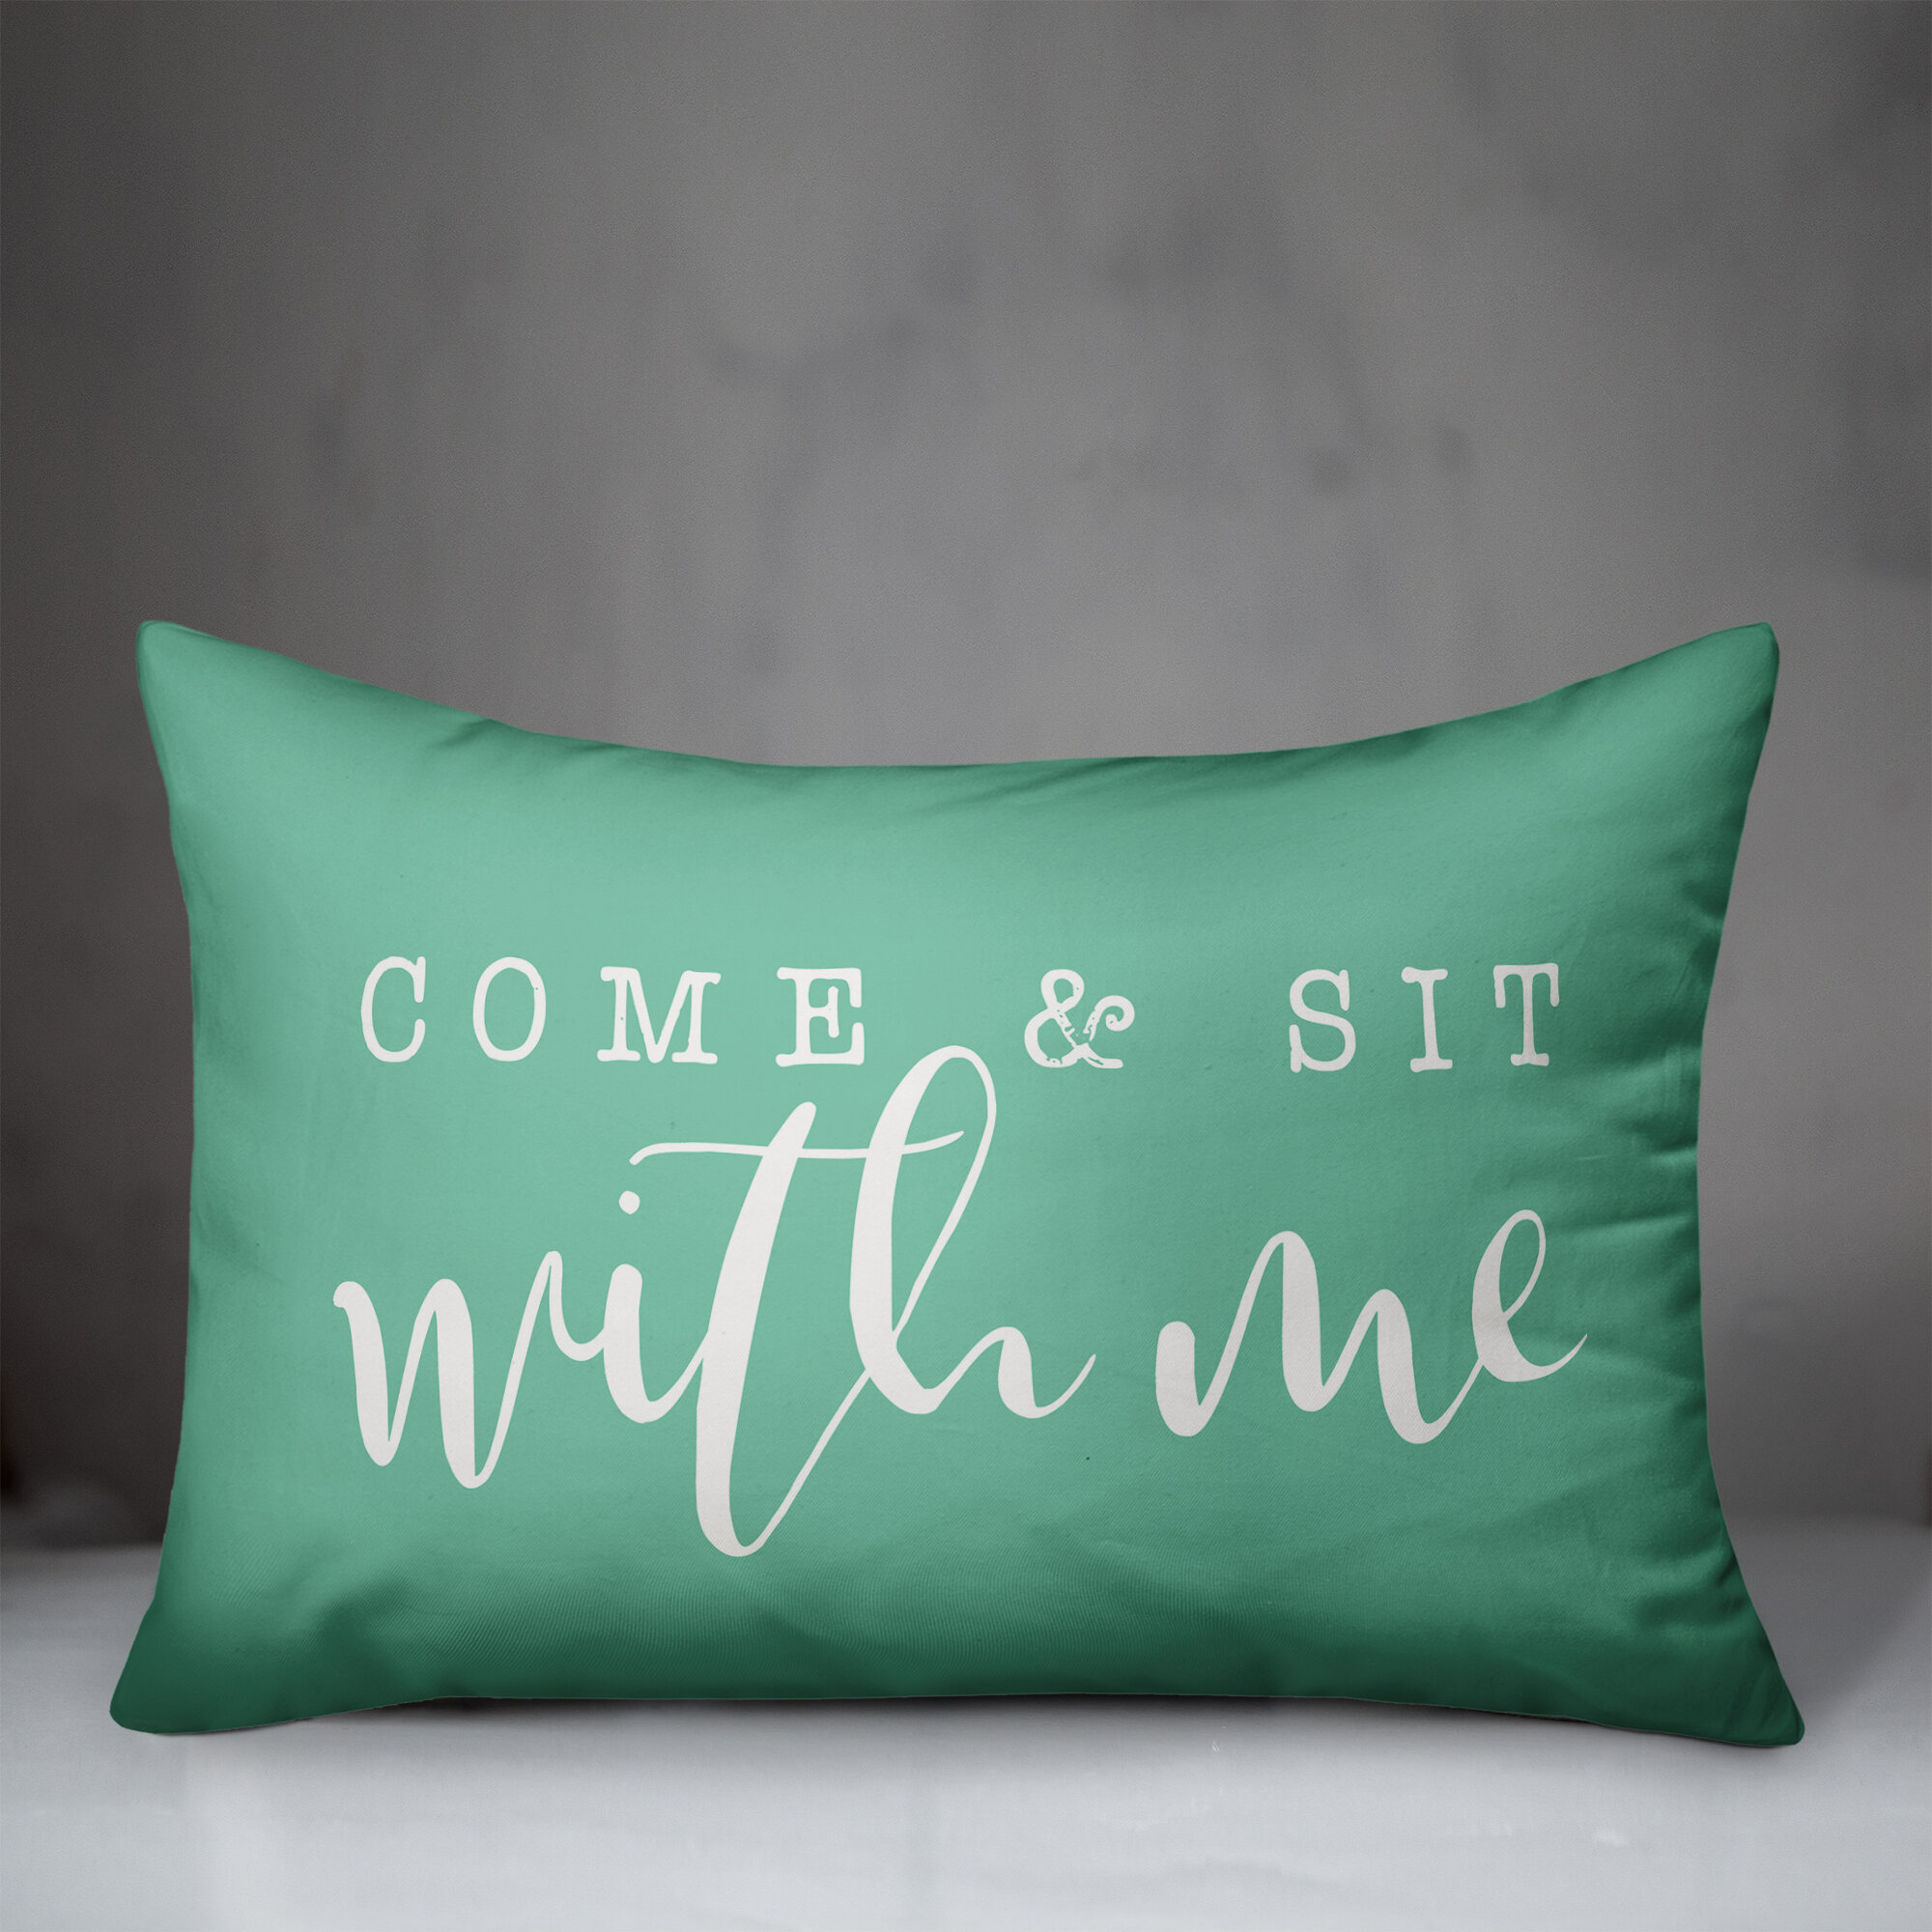 Green Throw Pillows Free Shipping Over 35 Wayfair